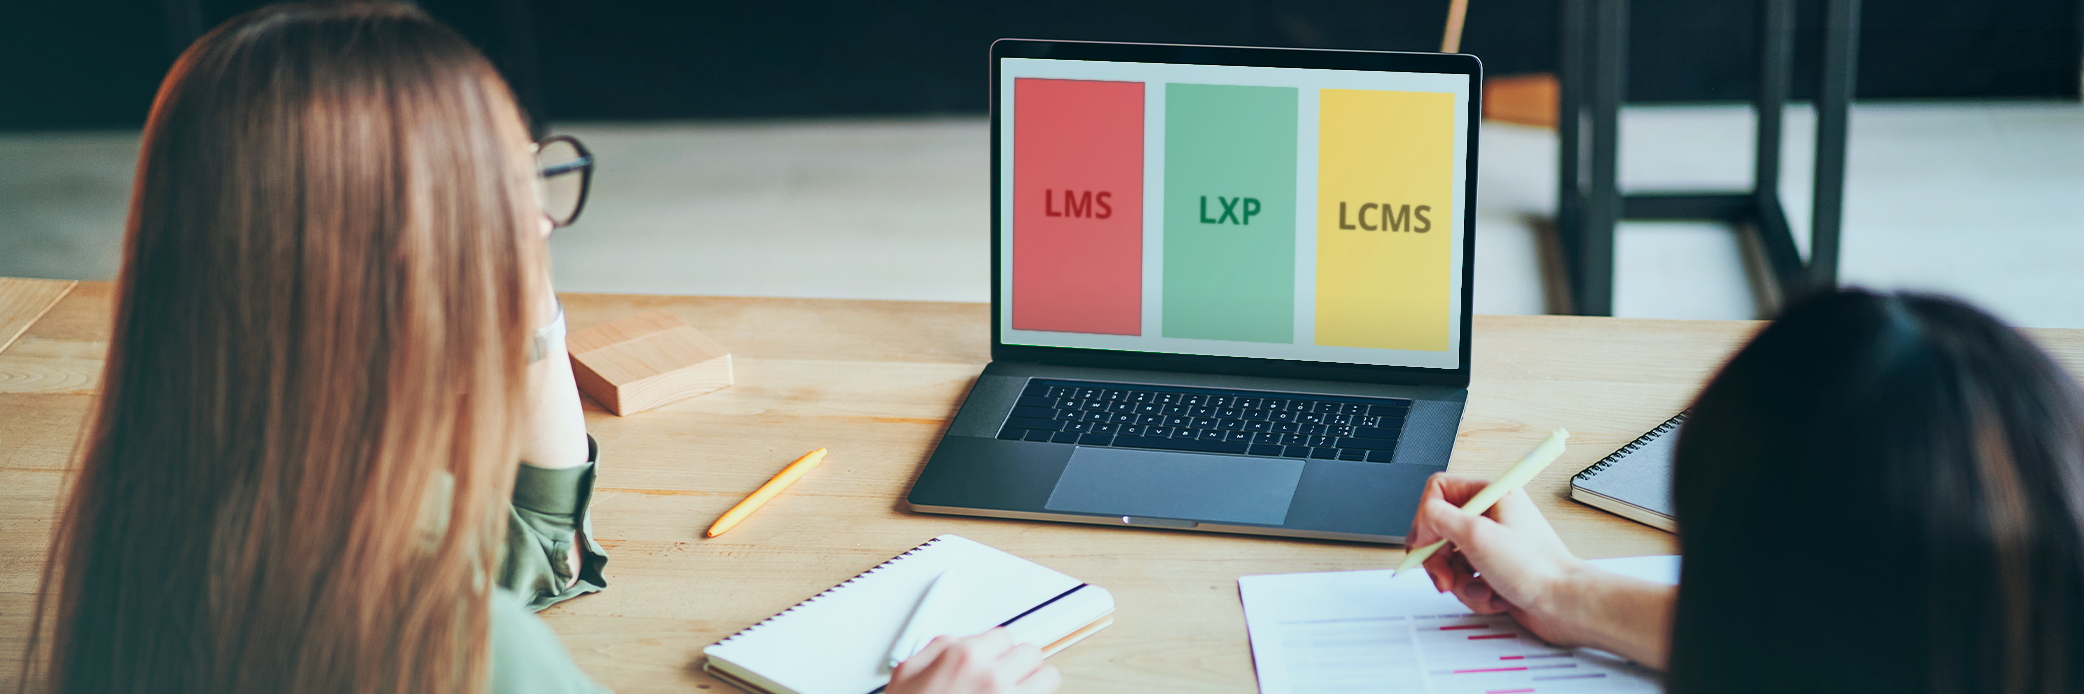 LMS vs LXP vs LCMS: Which Learning Solution Should You Choose?